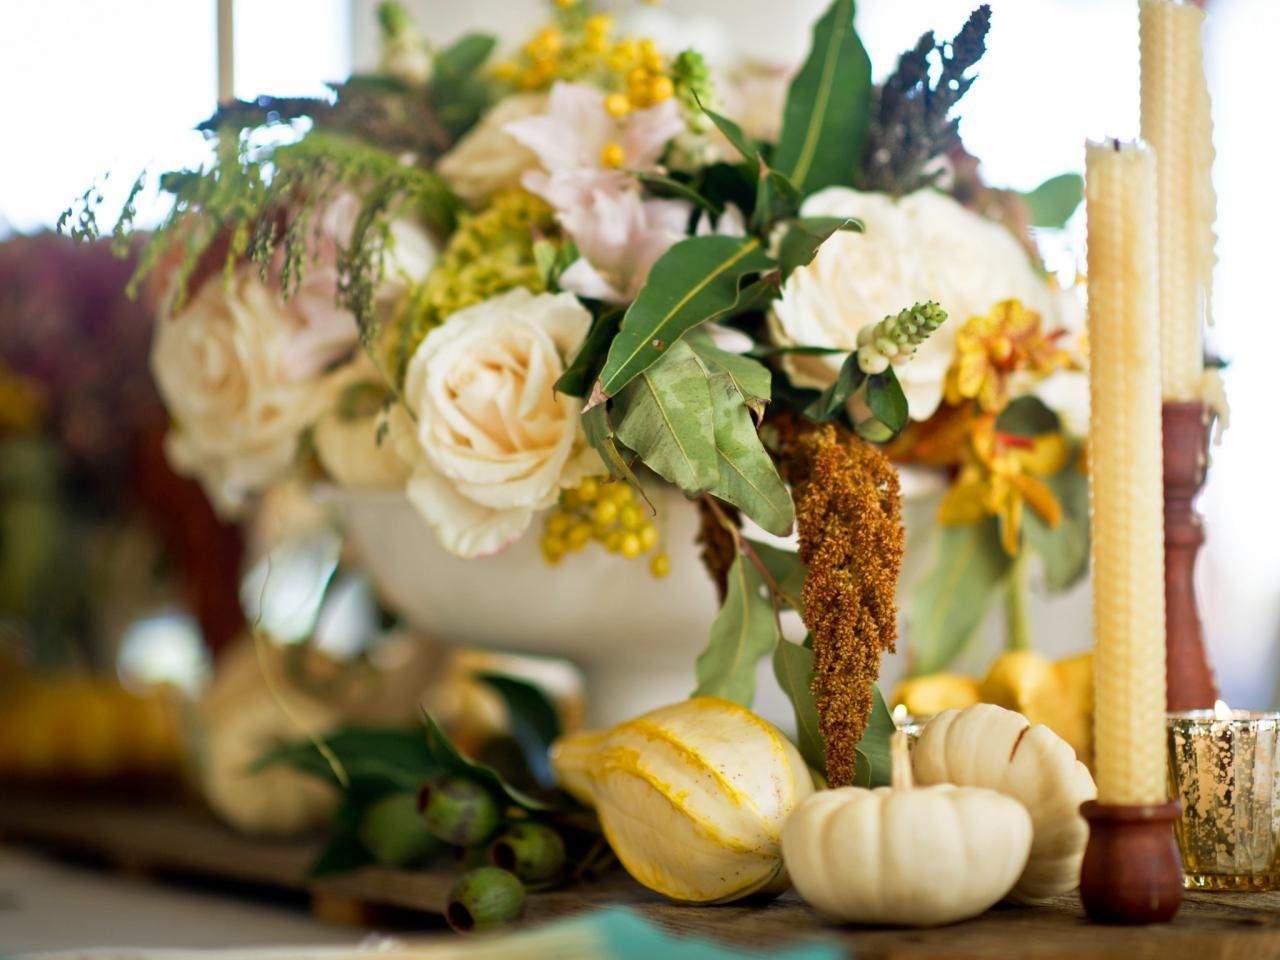 Designer camille styles pairs rustic elements like beeswax candles